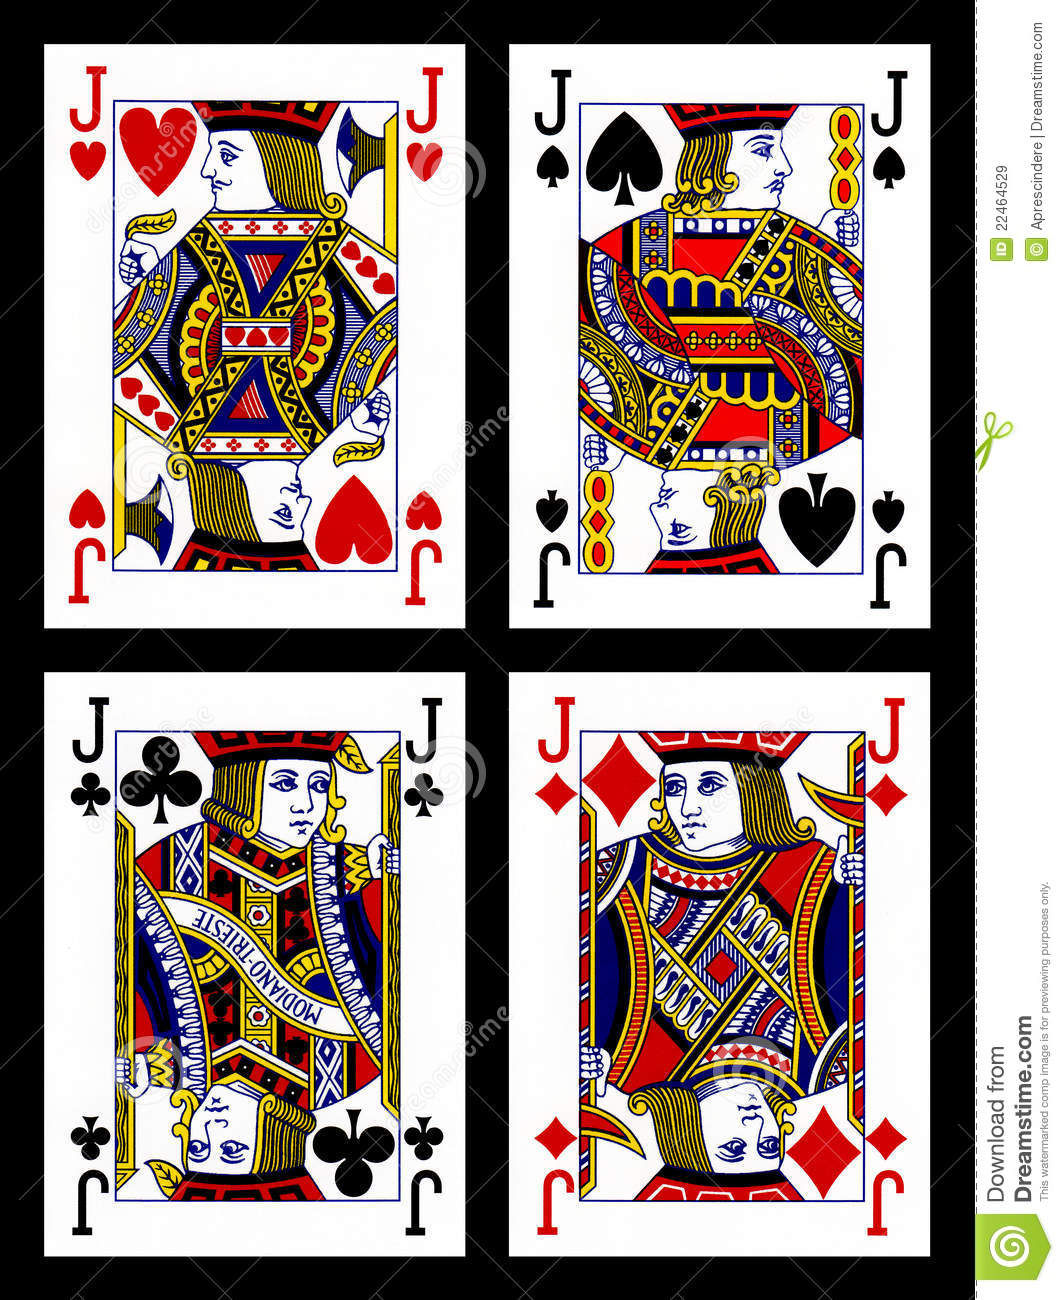 Four colored jacks cards (hearts, diamonds, clubs and spades) on black ...